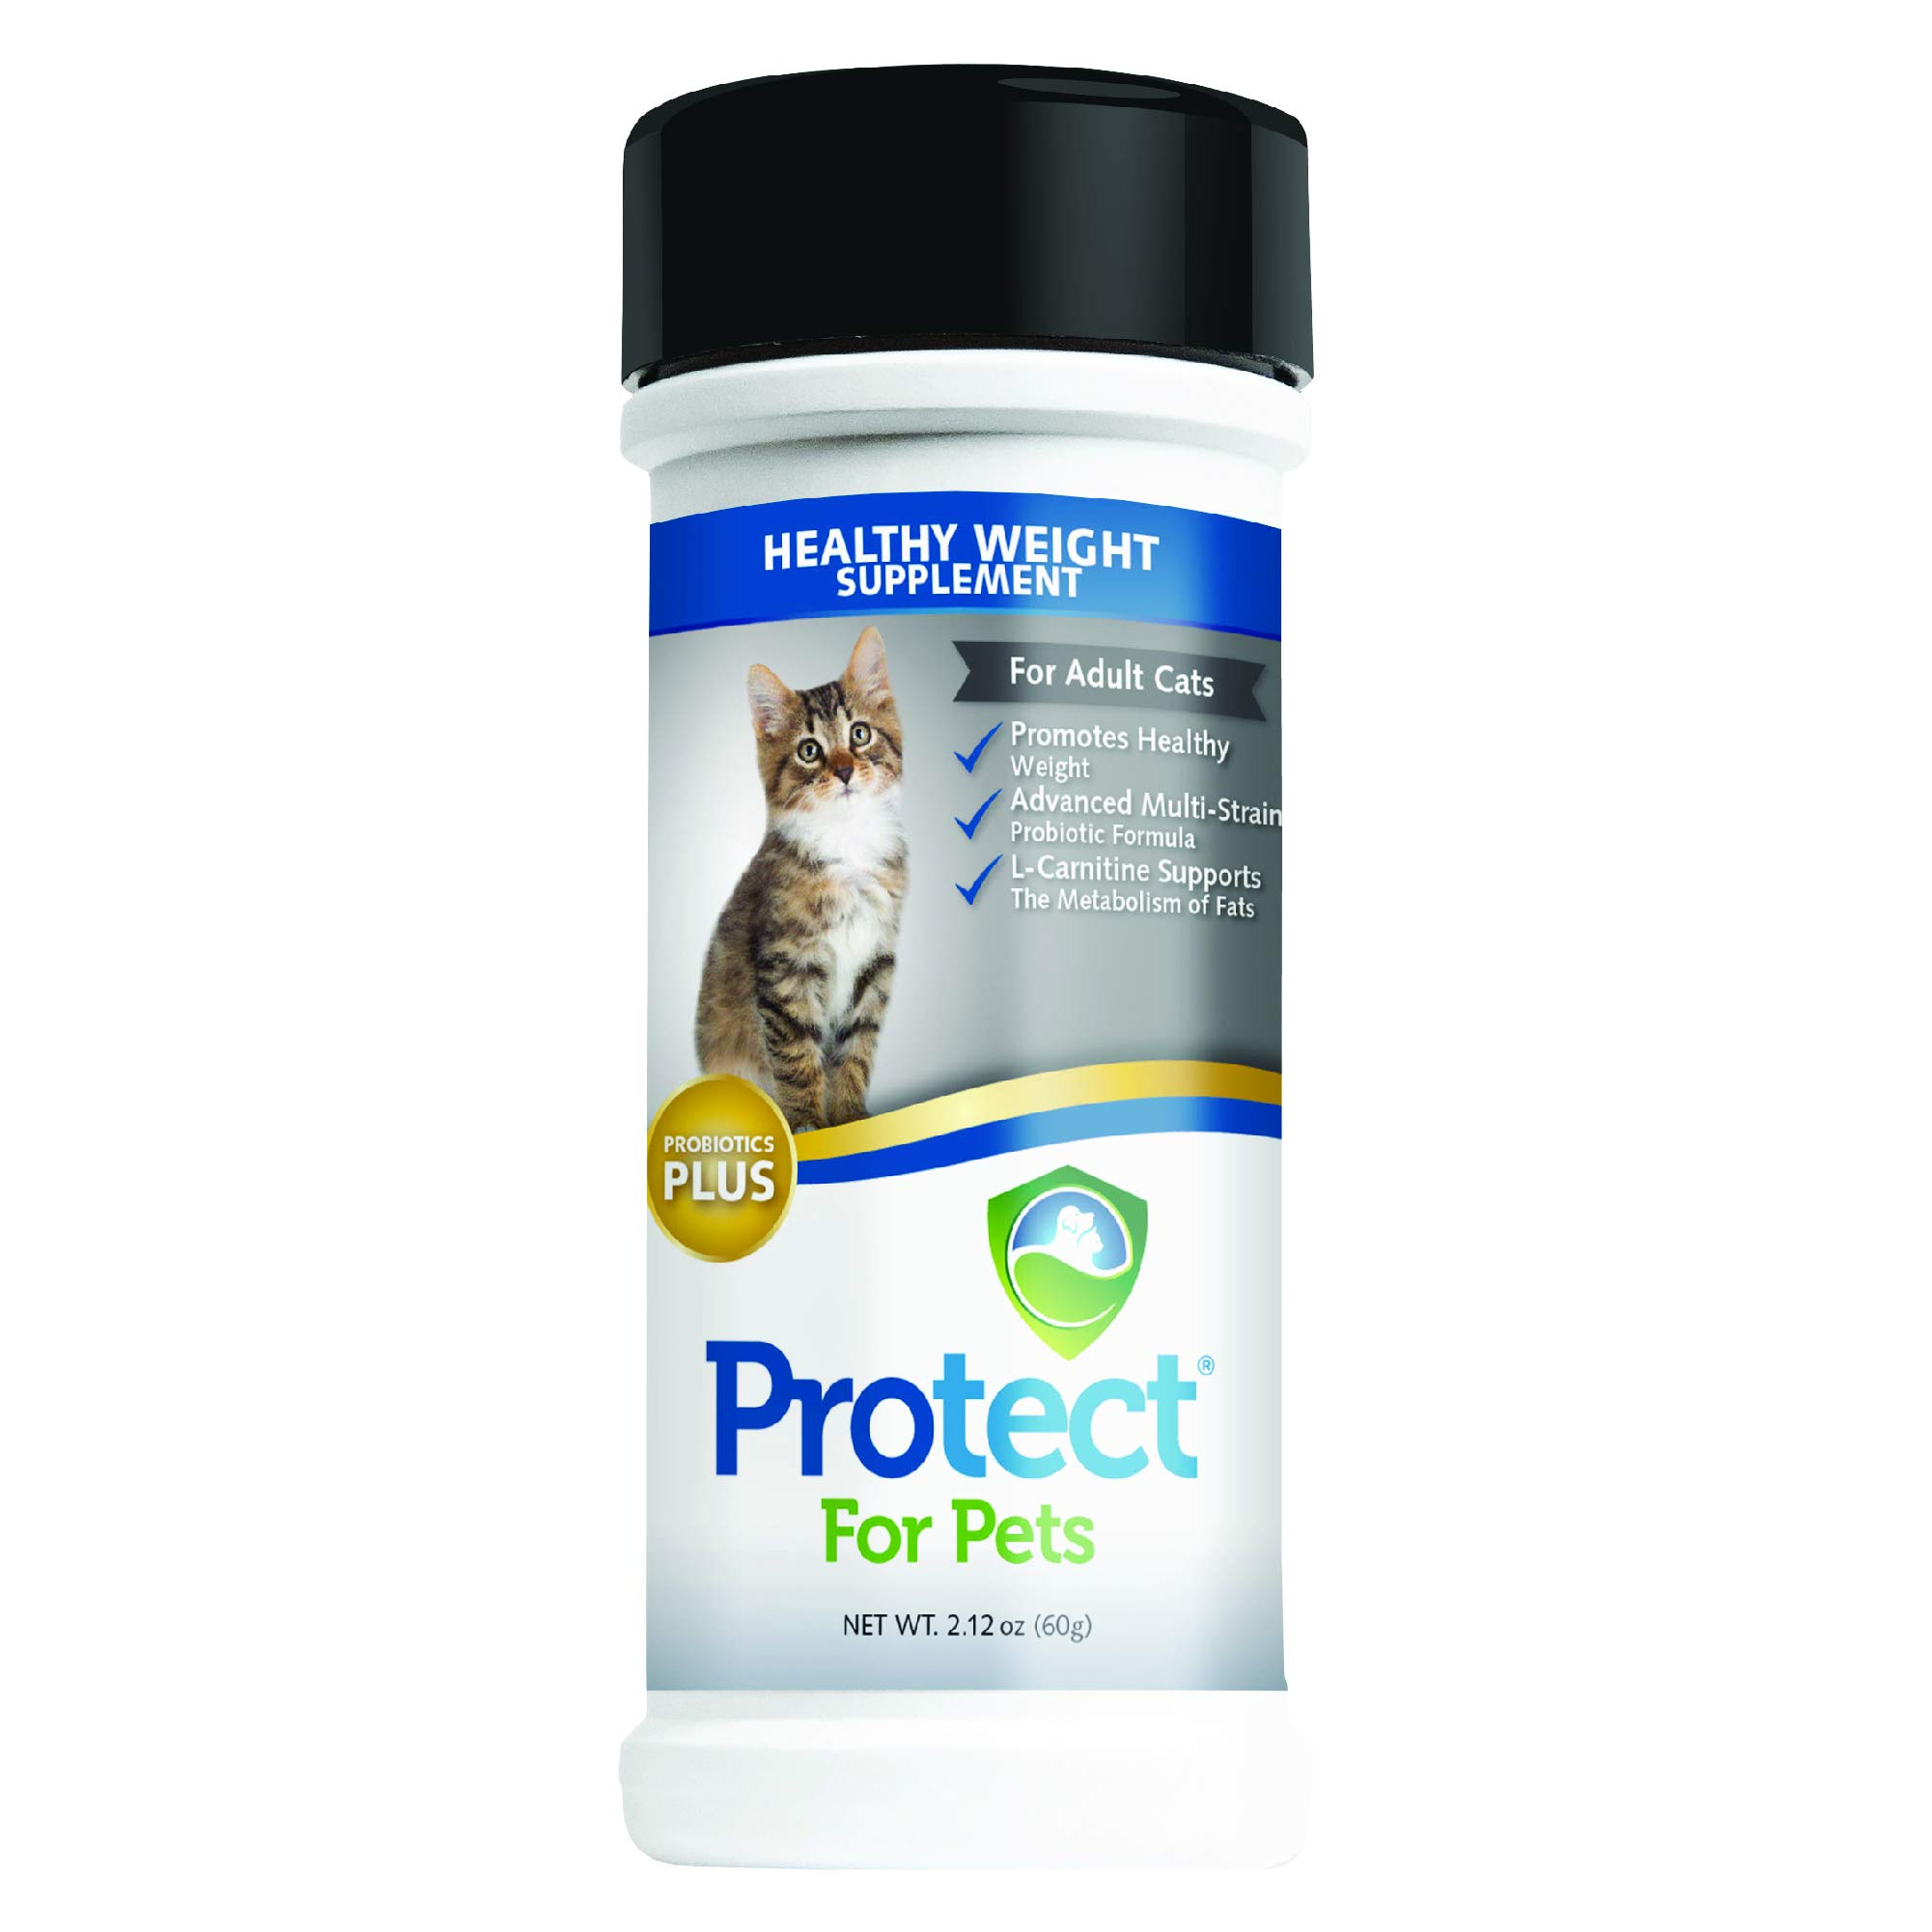 Protect for Pets Healthy Weight Supplement for Adult Cats, 2.12 oz. by Protect for Pets